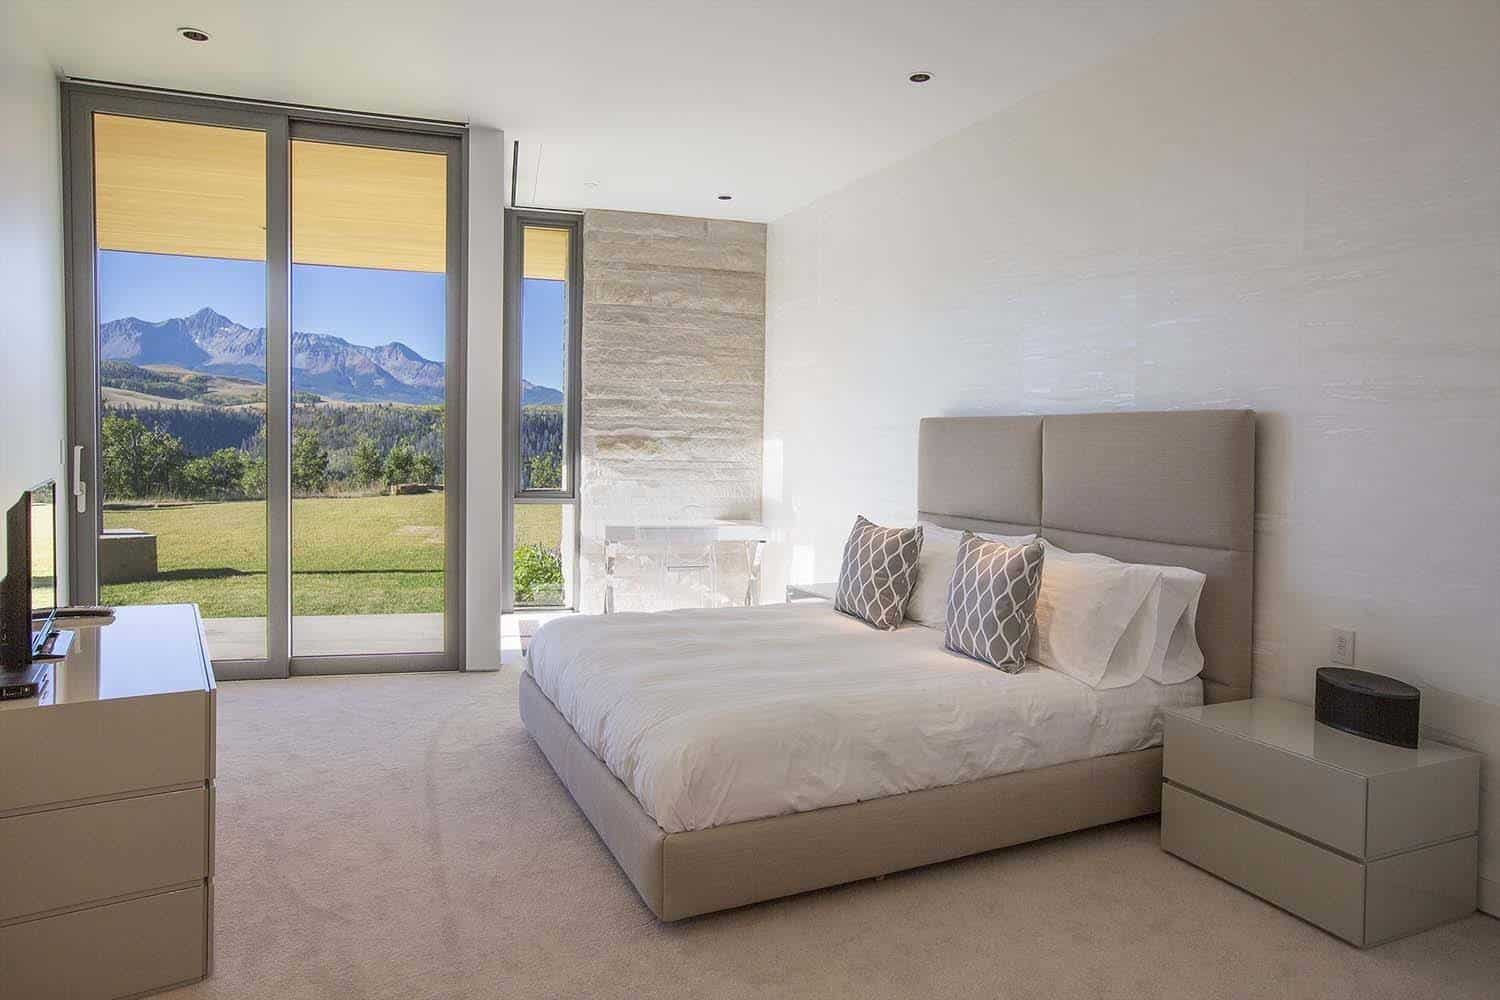 Modern-Residence-Colorado-Poss Architecture-55-1 Kindesign